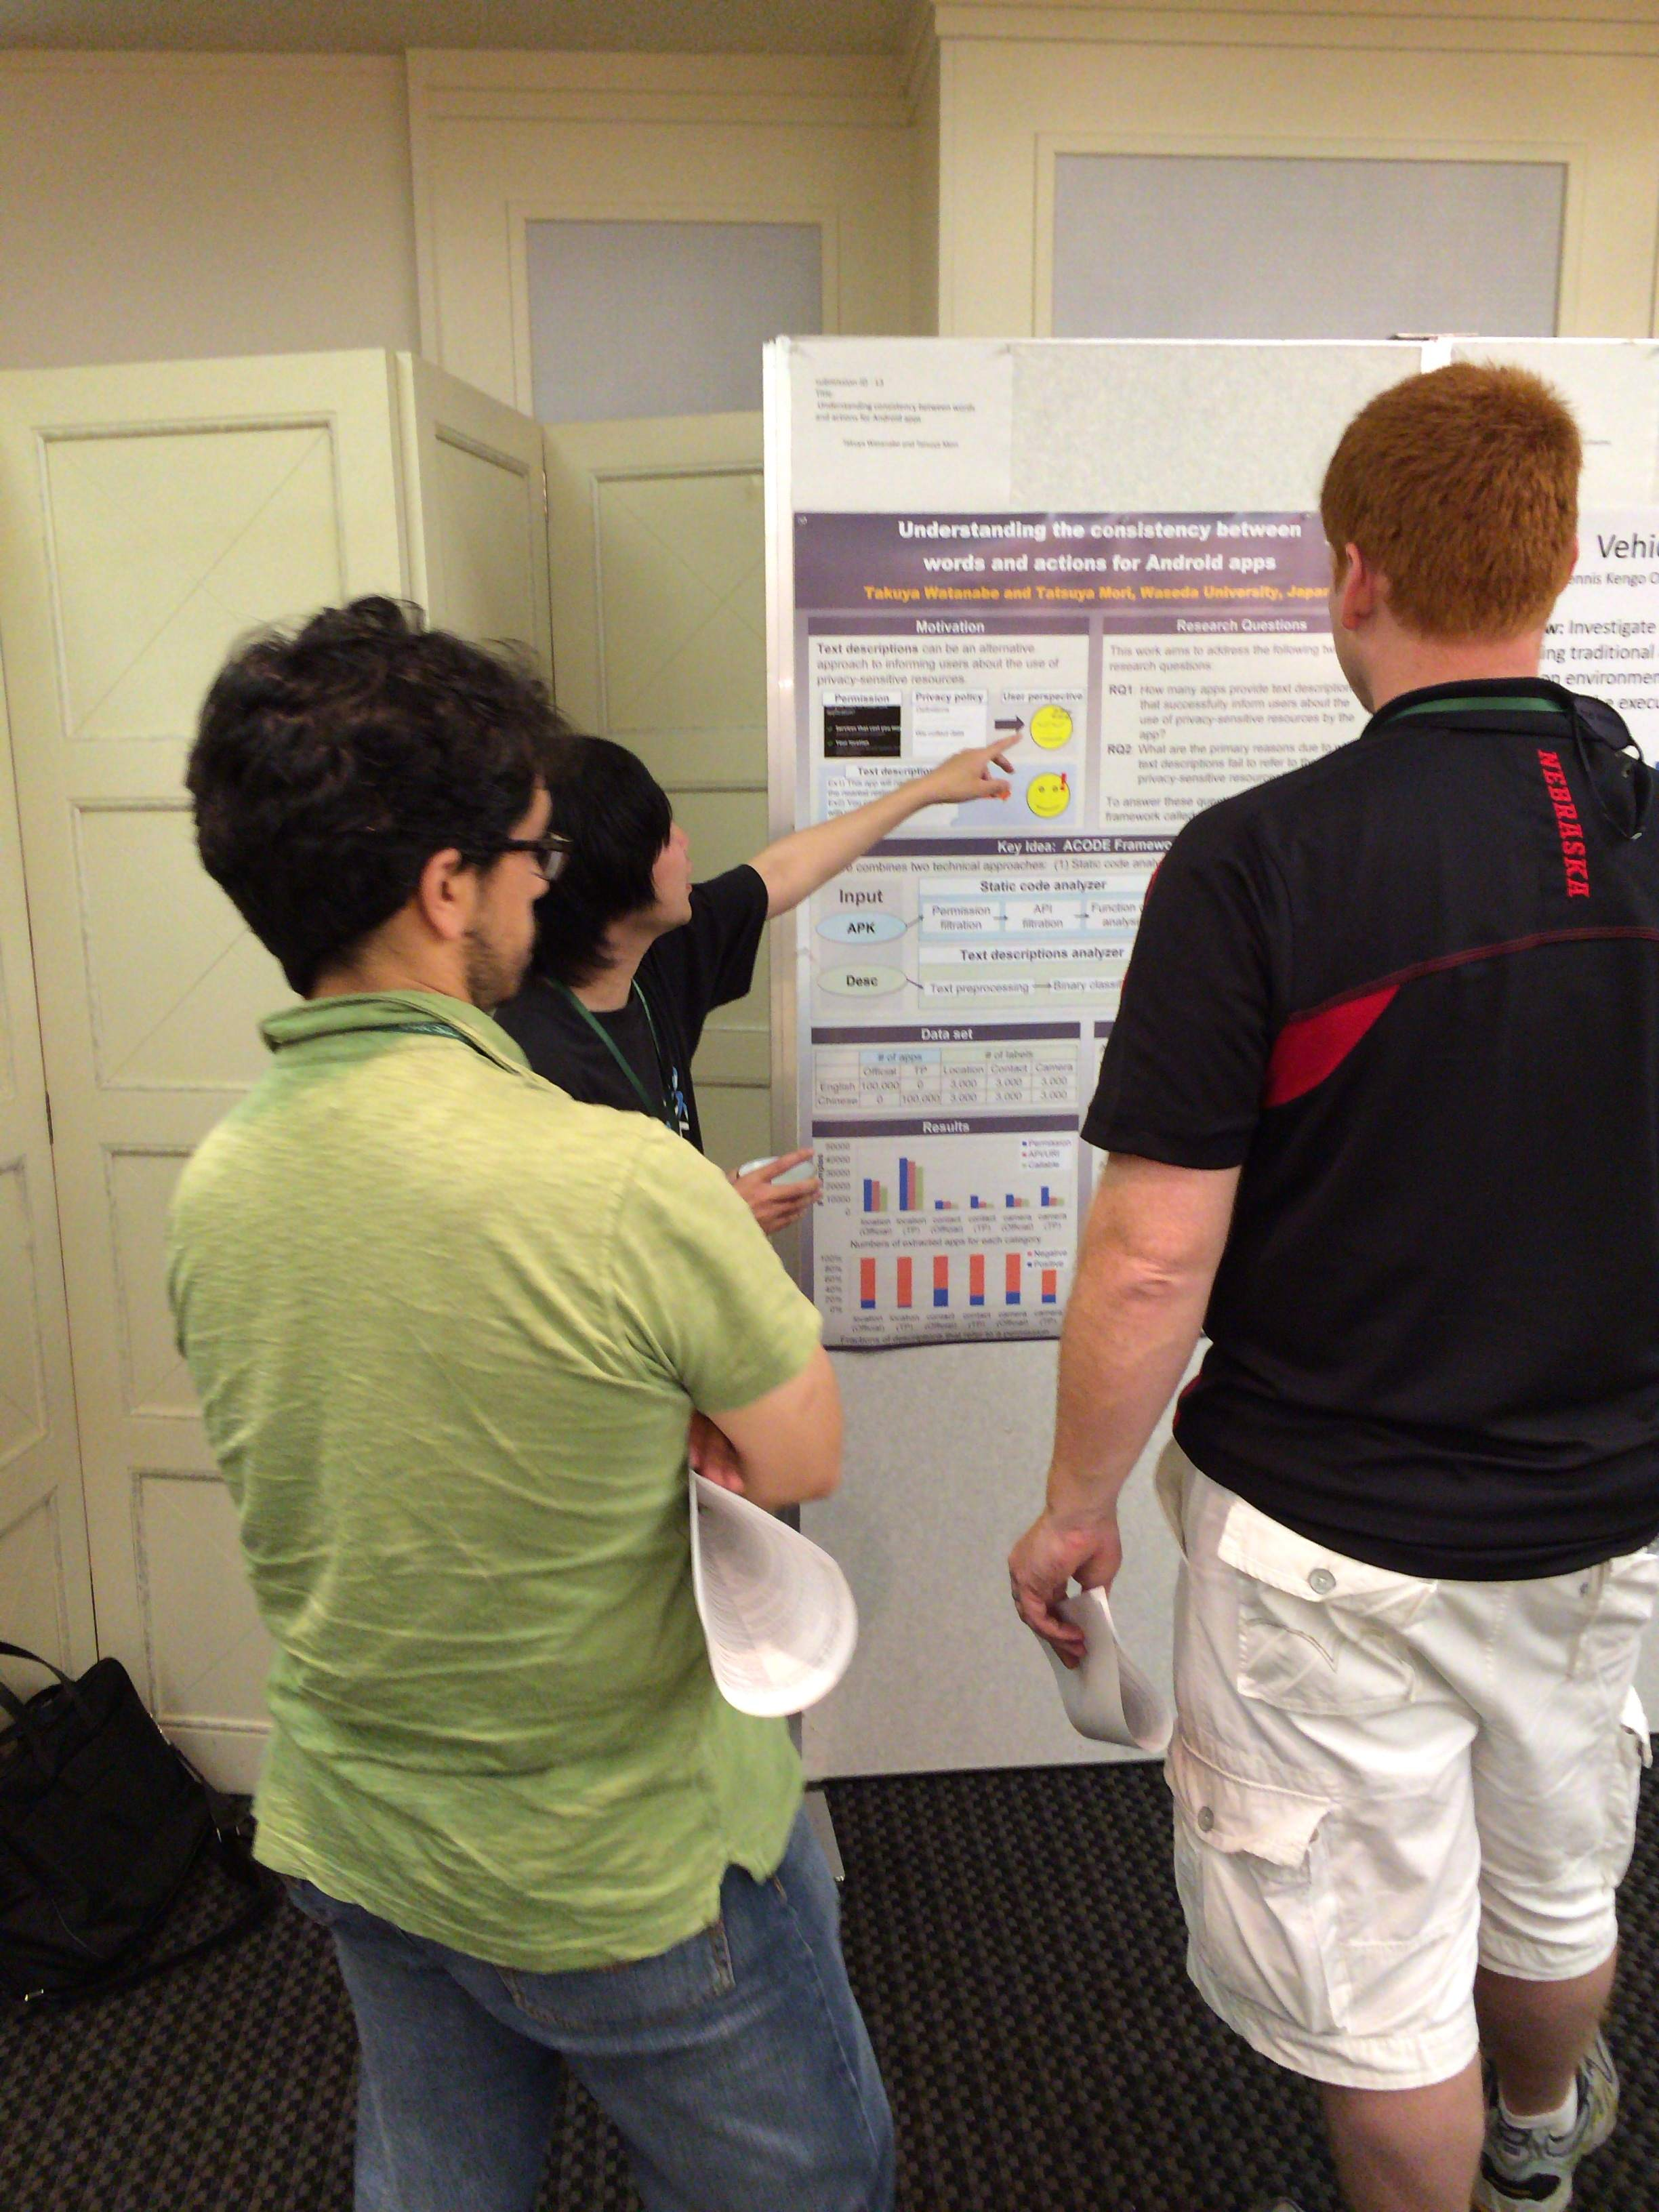 asiaccs2014_poster